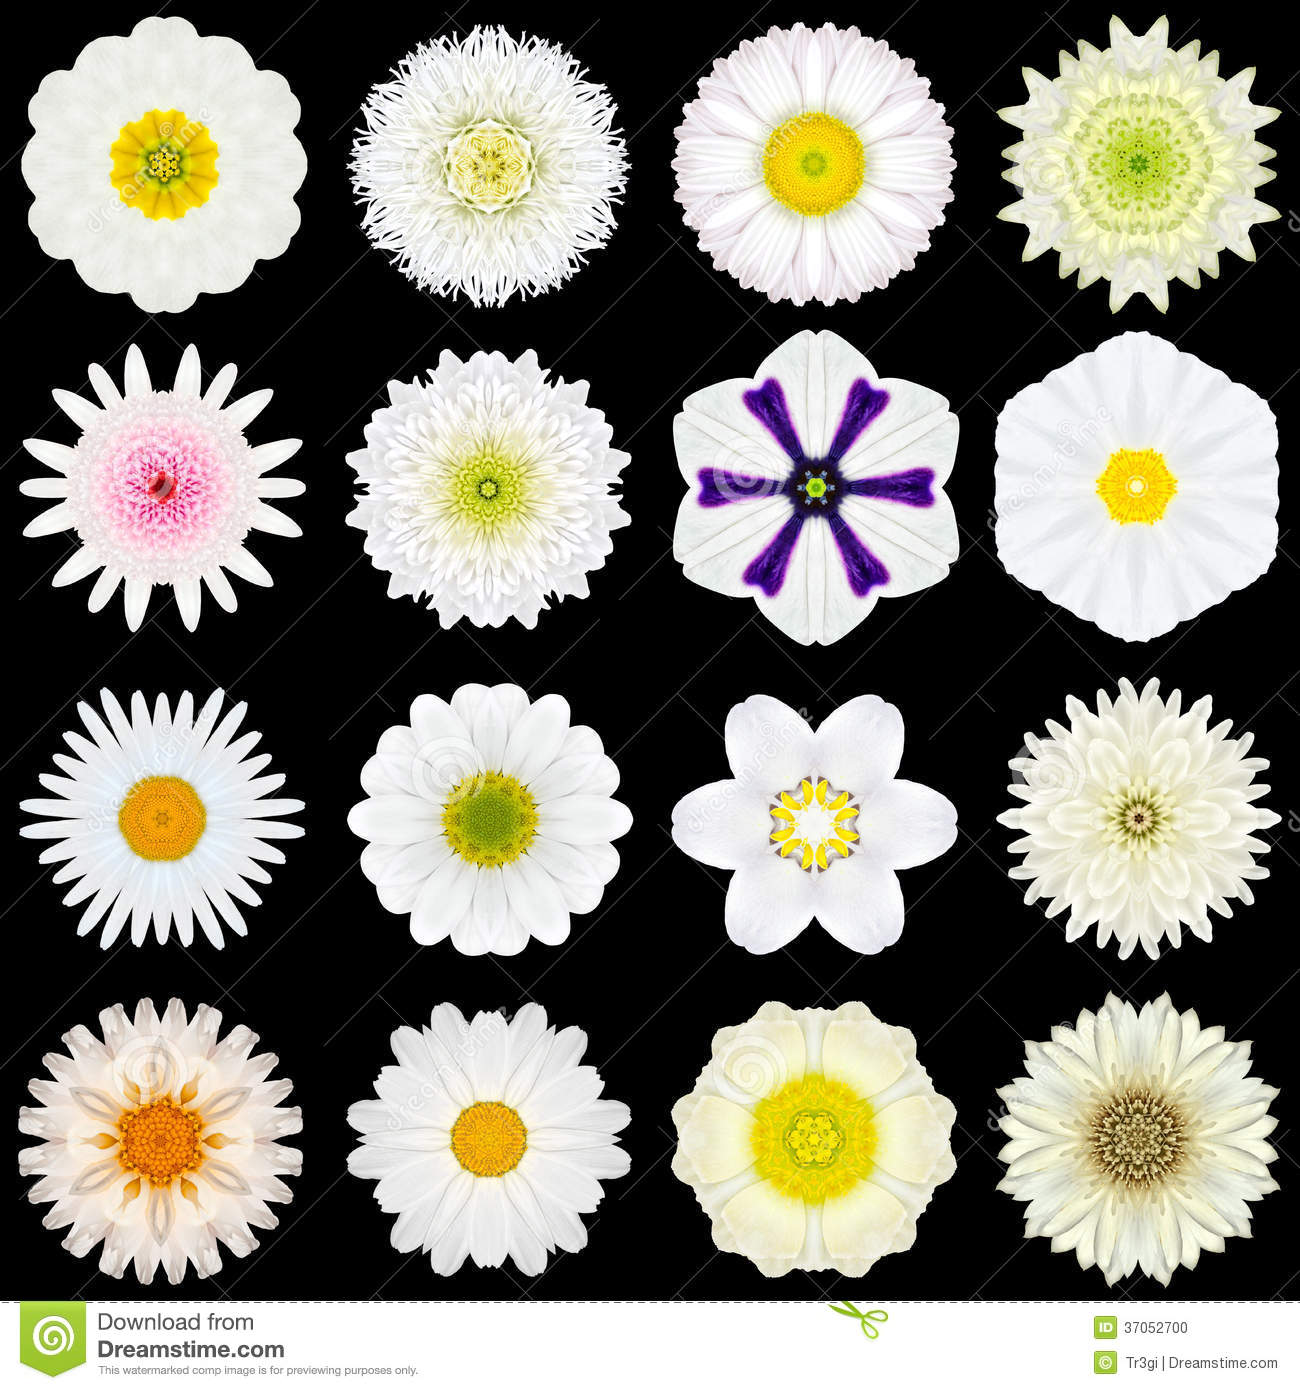 Tutti I Tipi Di Fiori Bianchi.Big Collection Of Various White Pattern Flowers Isolated On Black